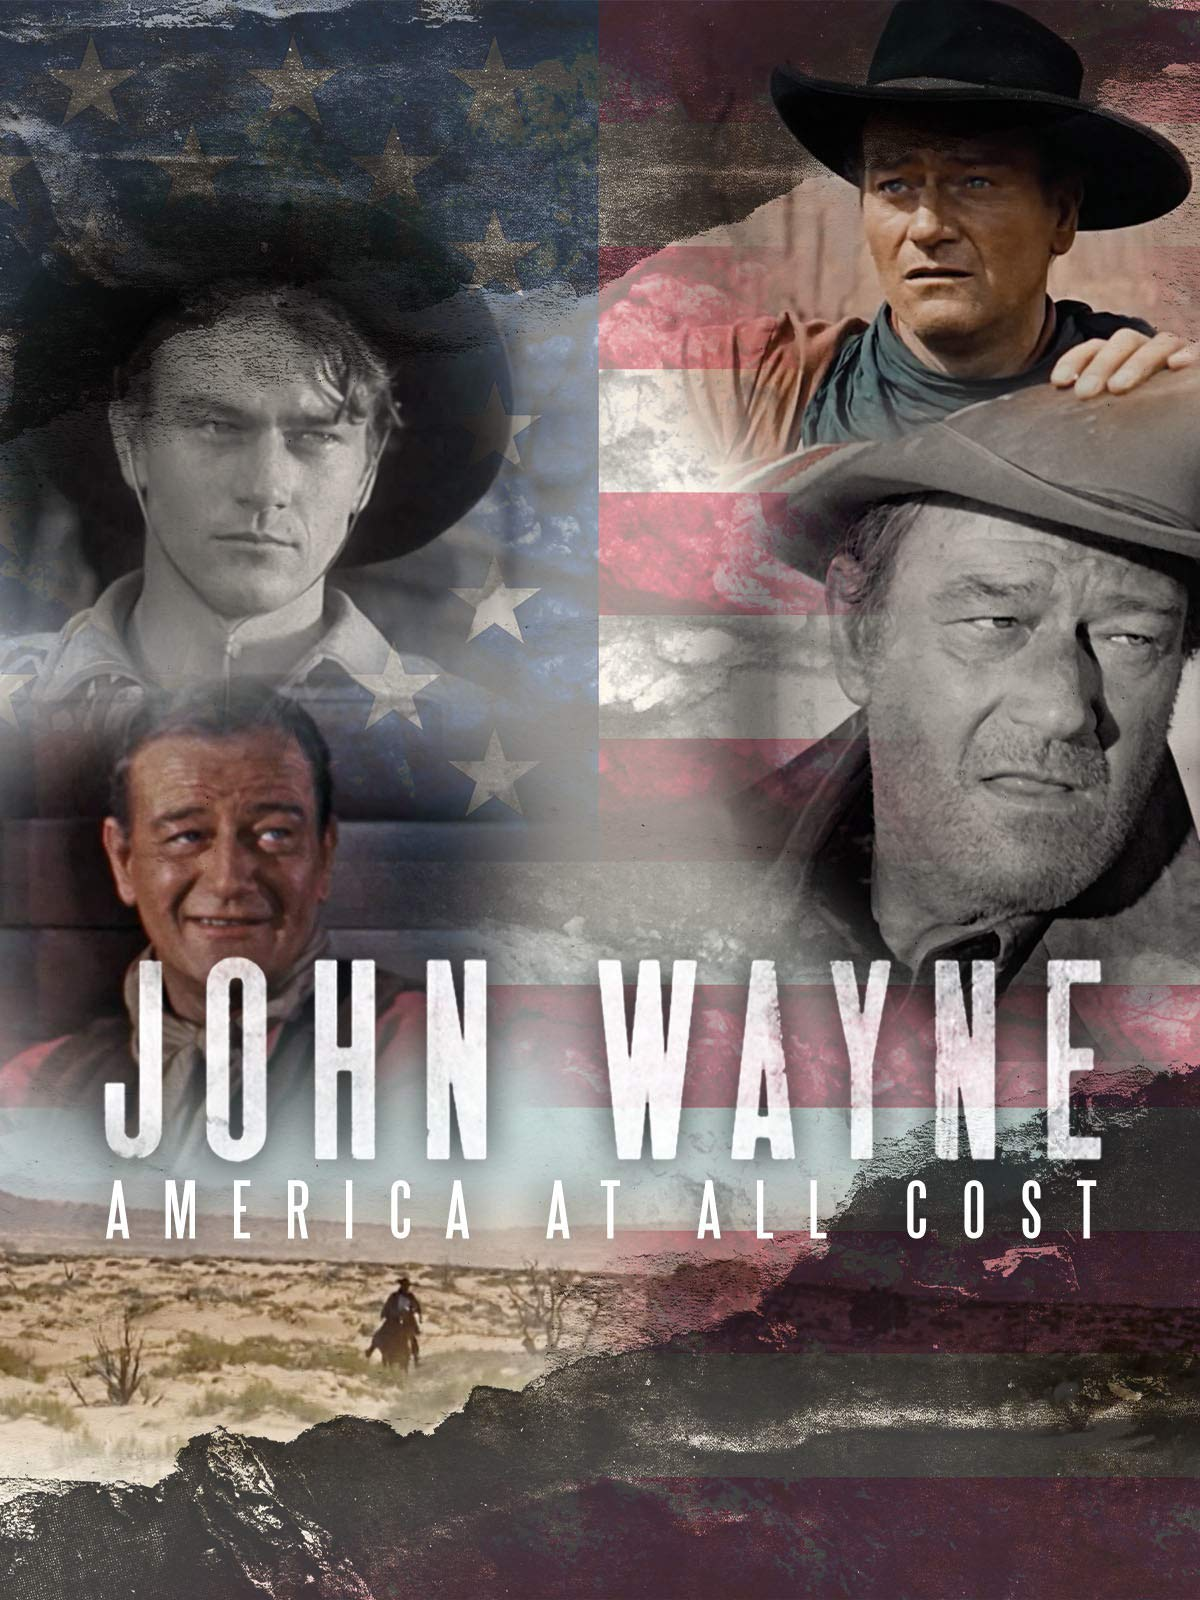 John Wayne America at All Costs